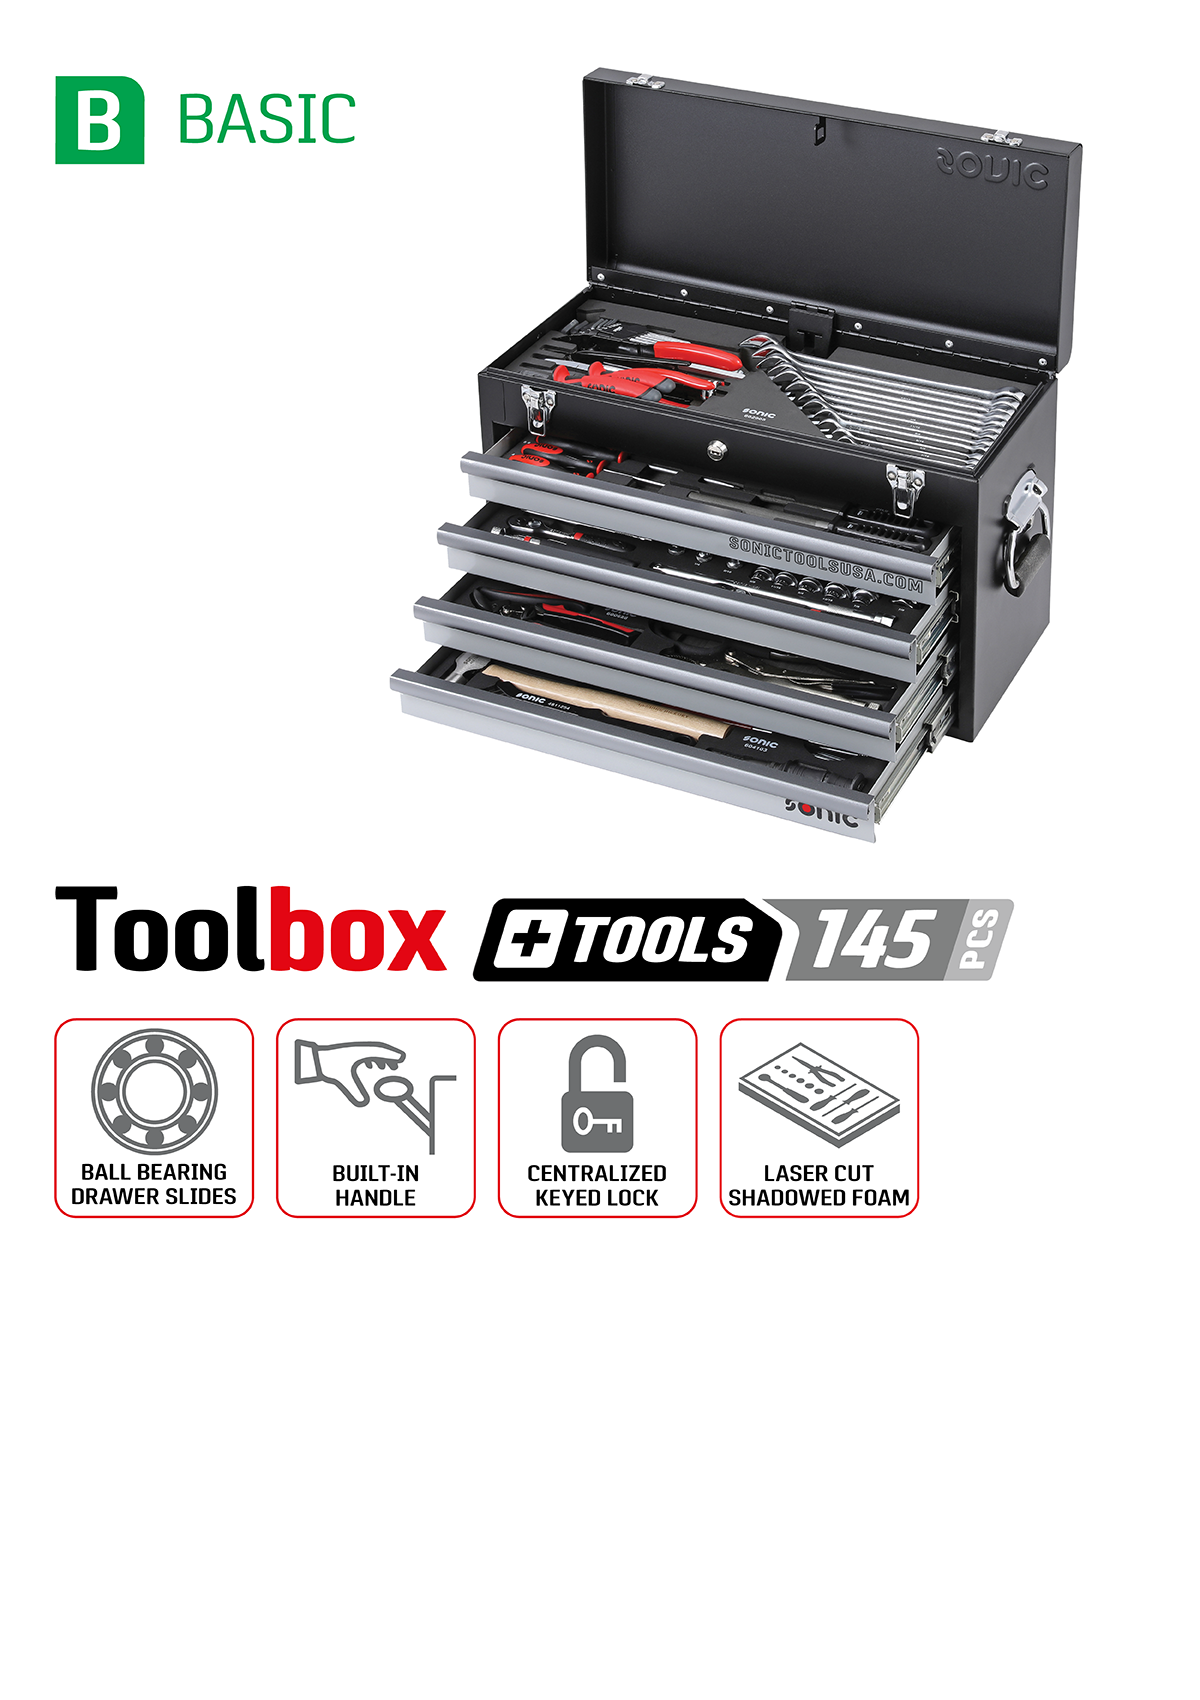 Sonic basic toolbox and toolkit